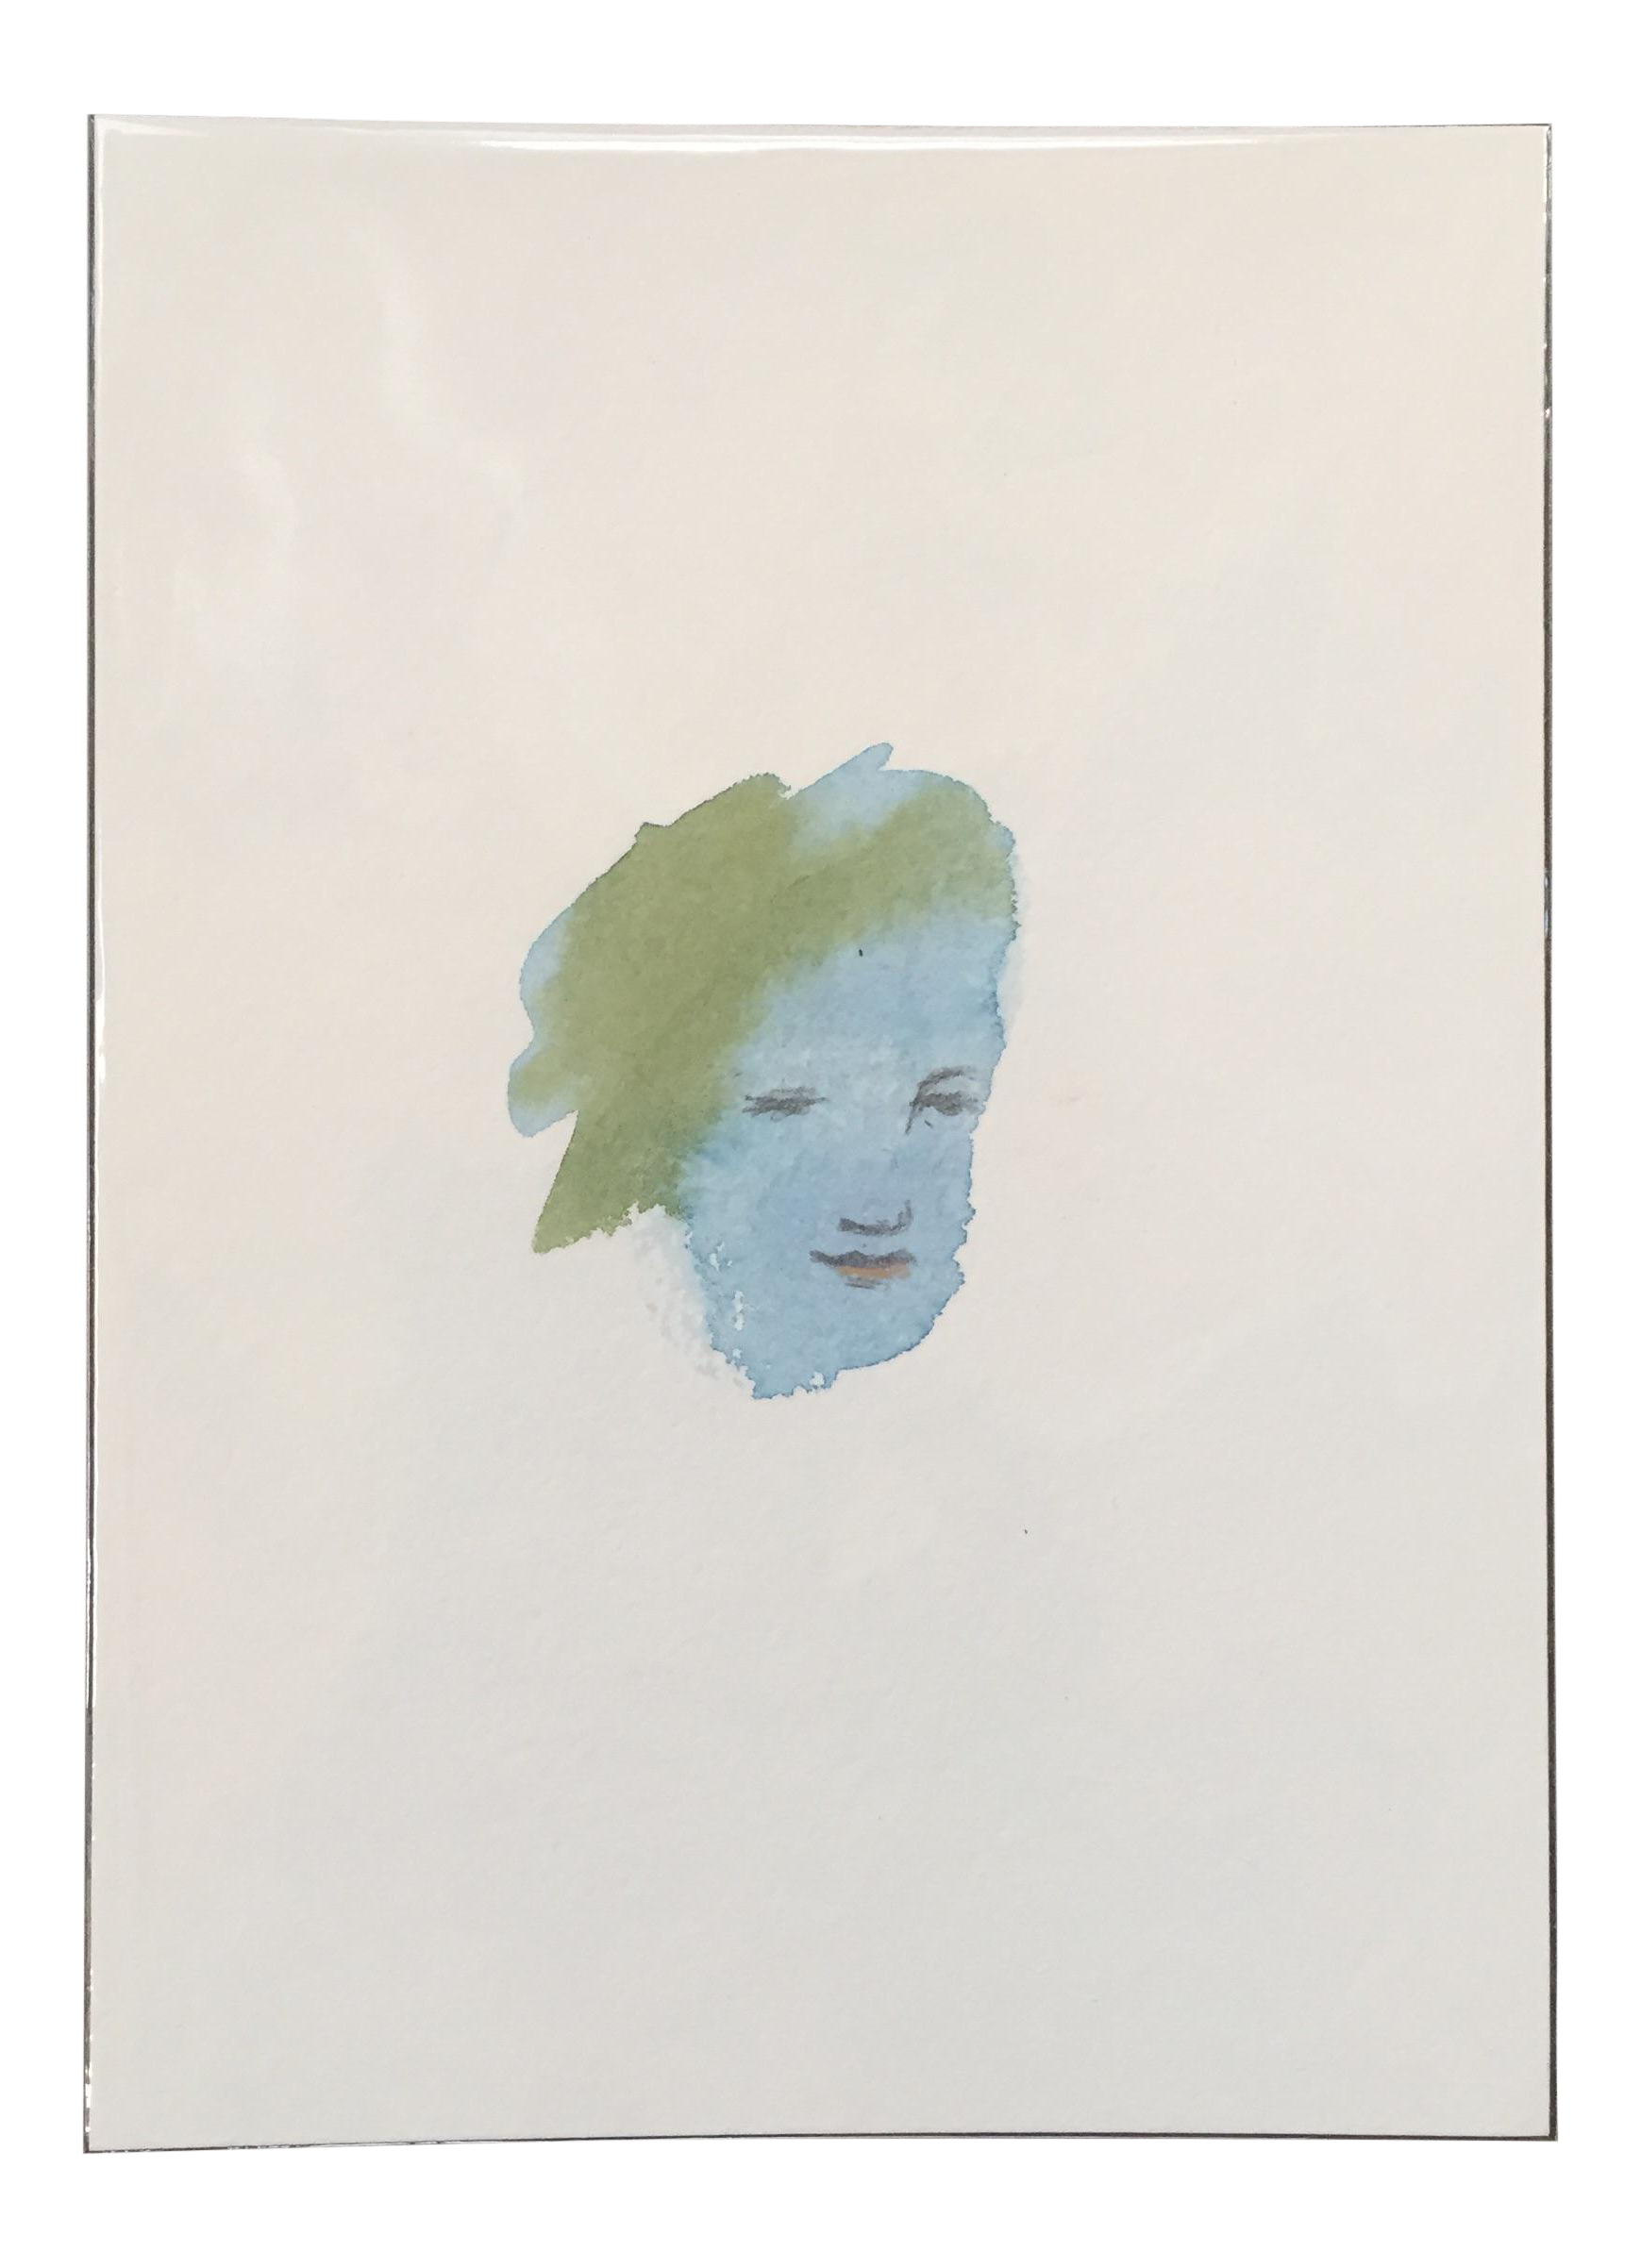 Chihuly drawing paper. Abstract small face watercolor